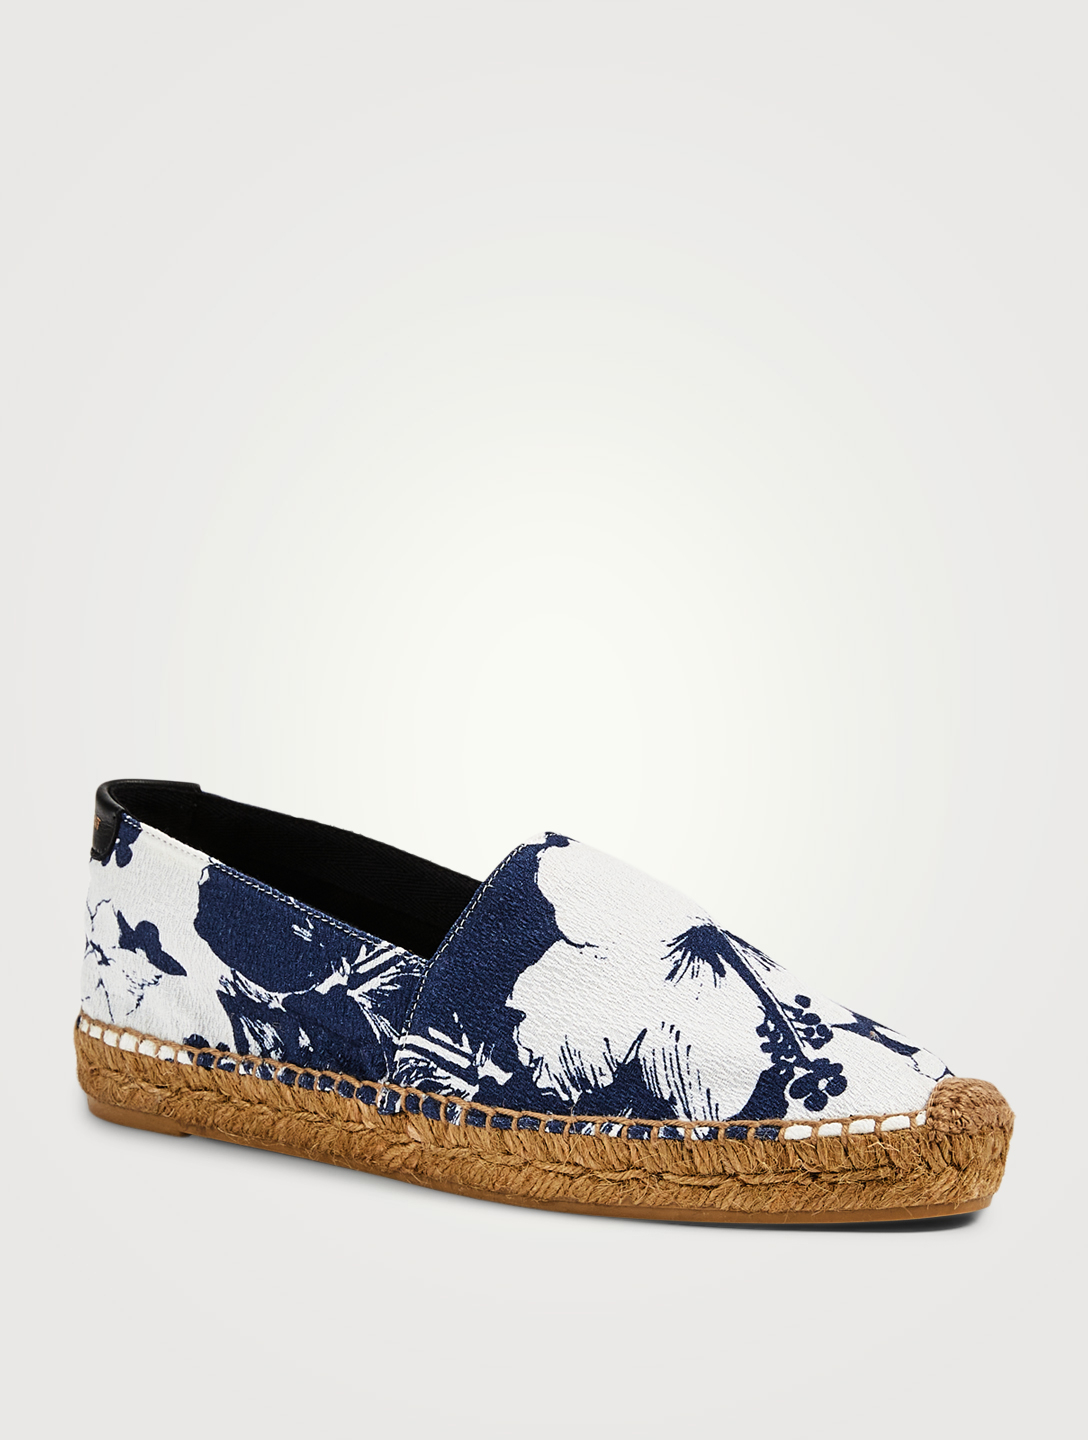 SAINT LAURENT SL Fabric Espadrilles In Hibiscus Print Women's Blue